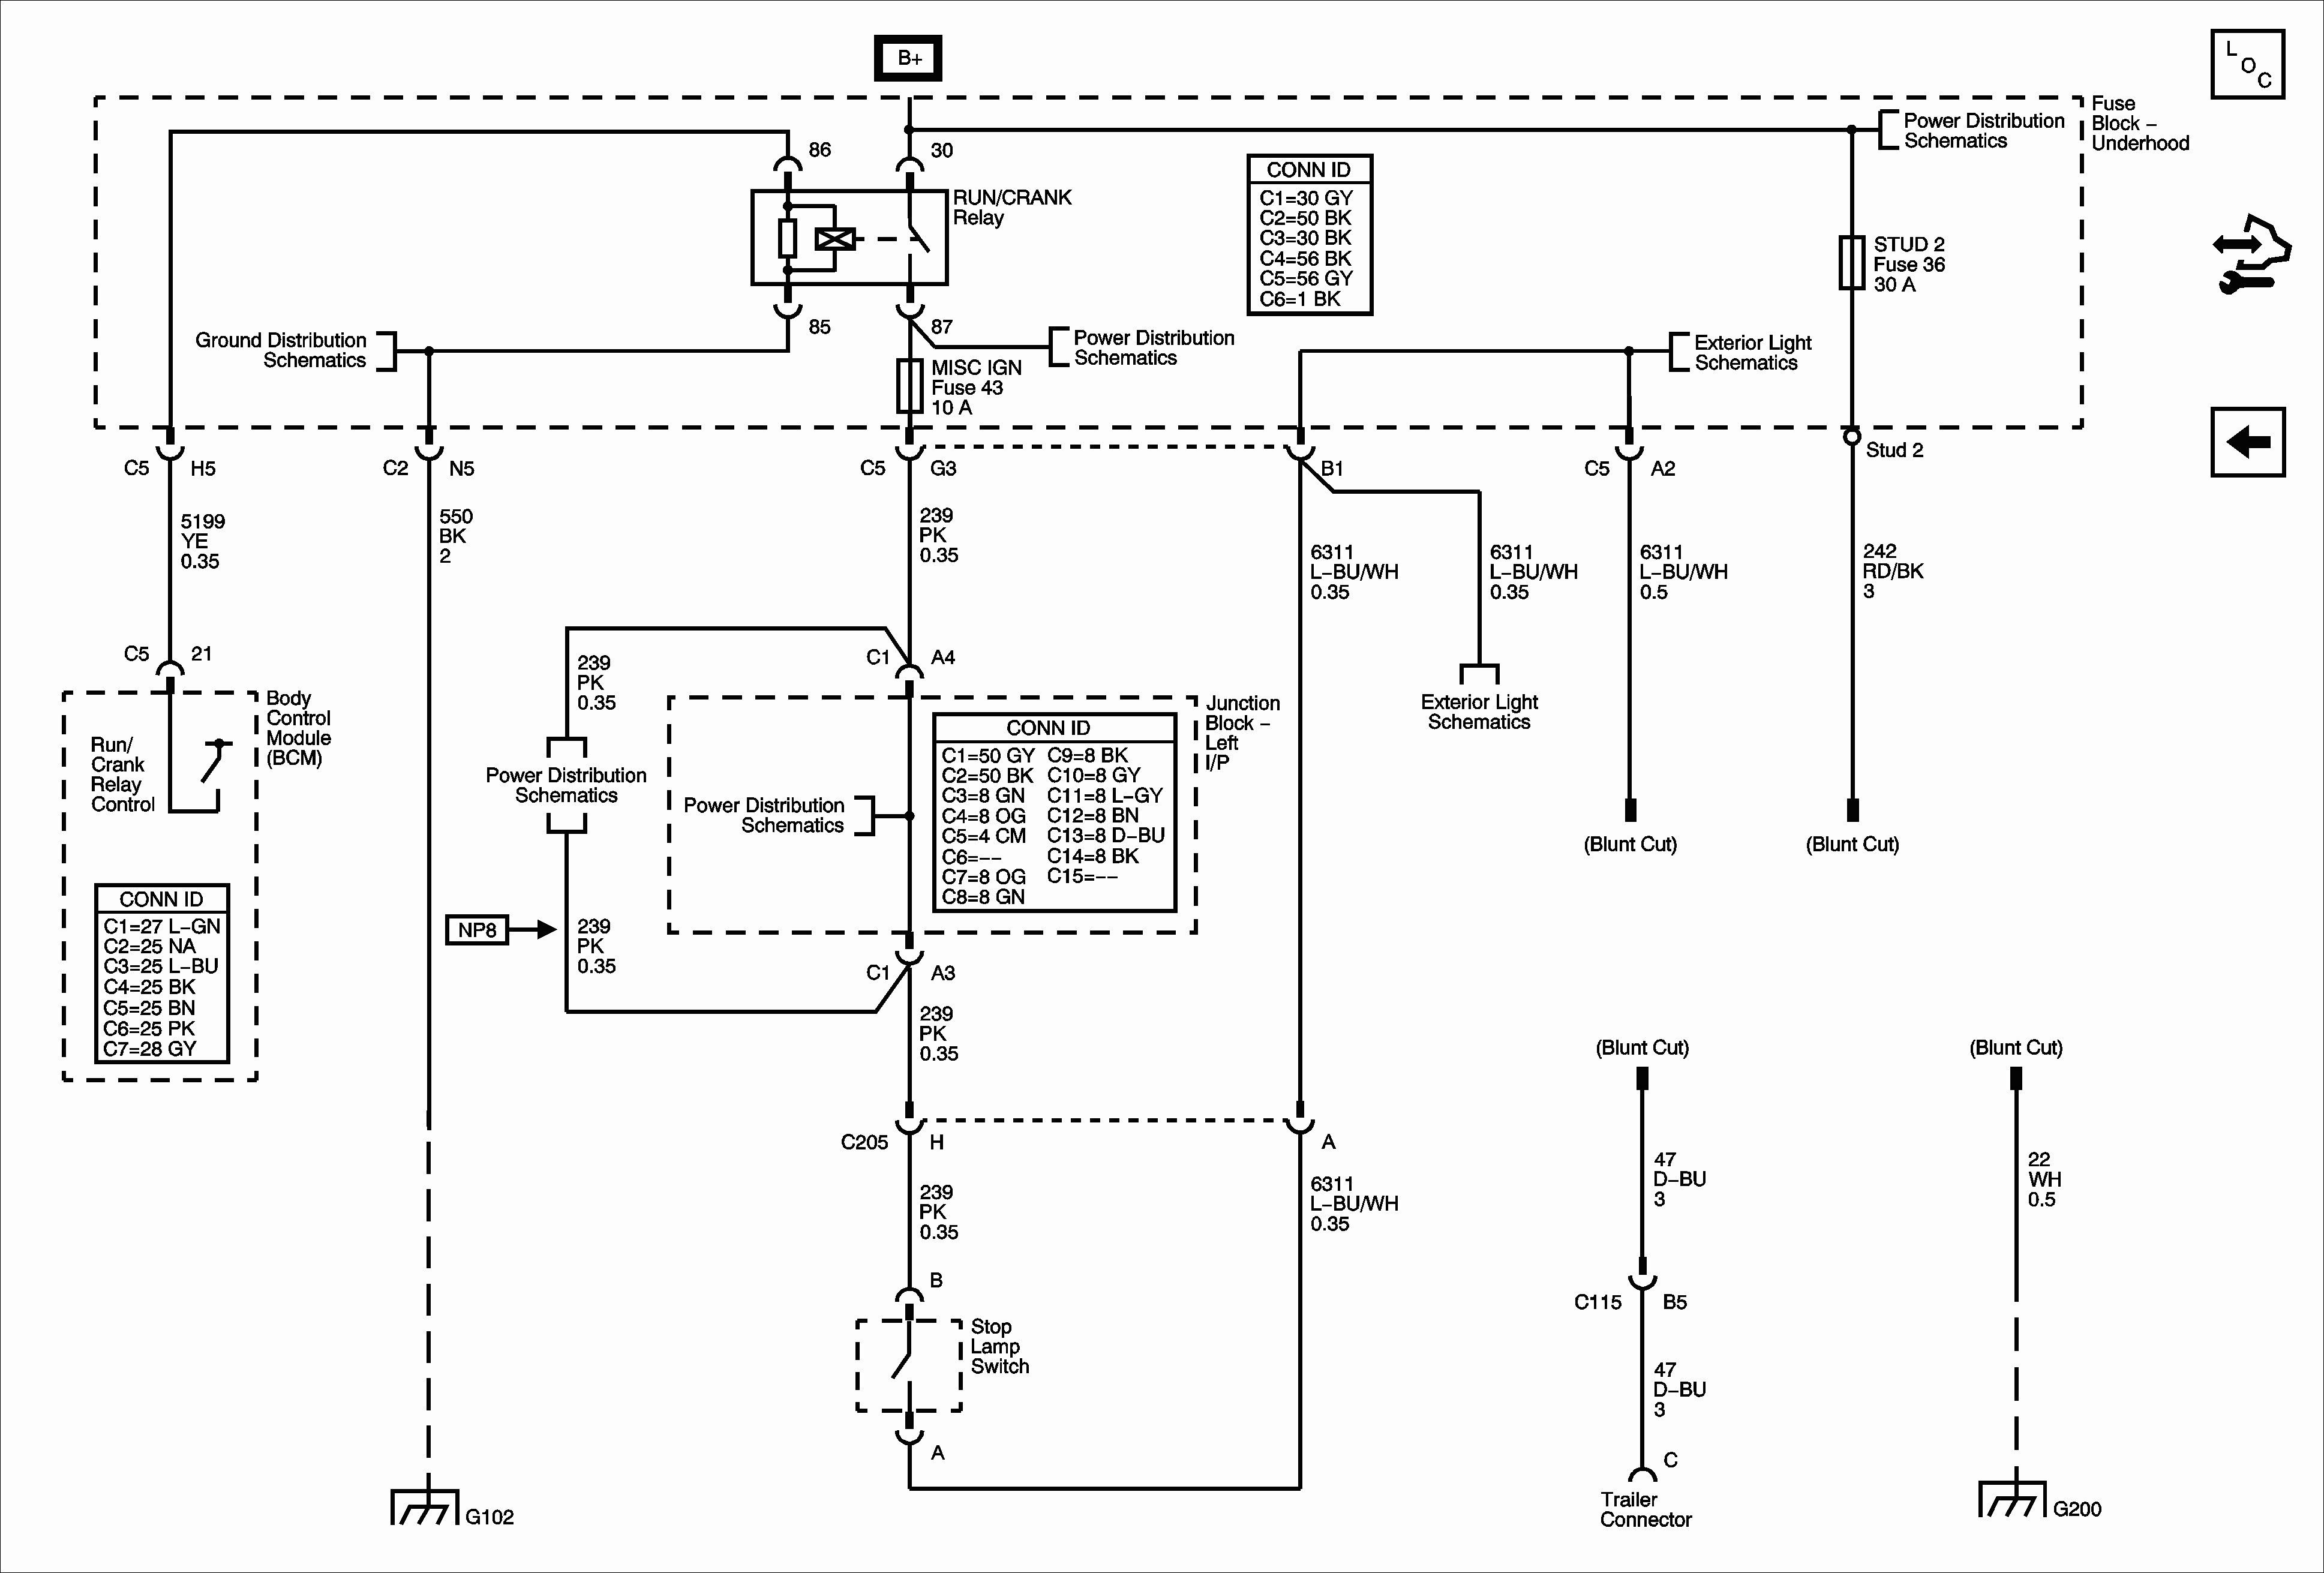 Unique Wiring Diagram Electric Scooter Diagram Diagramsample Diagramtemplate Wiringdiagram Diagramchart Worksheet Worksheette Diagram Wire Diagram Chart